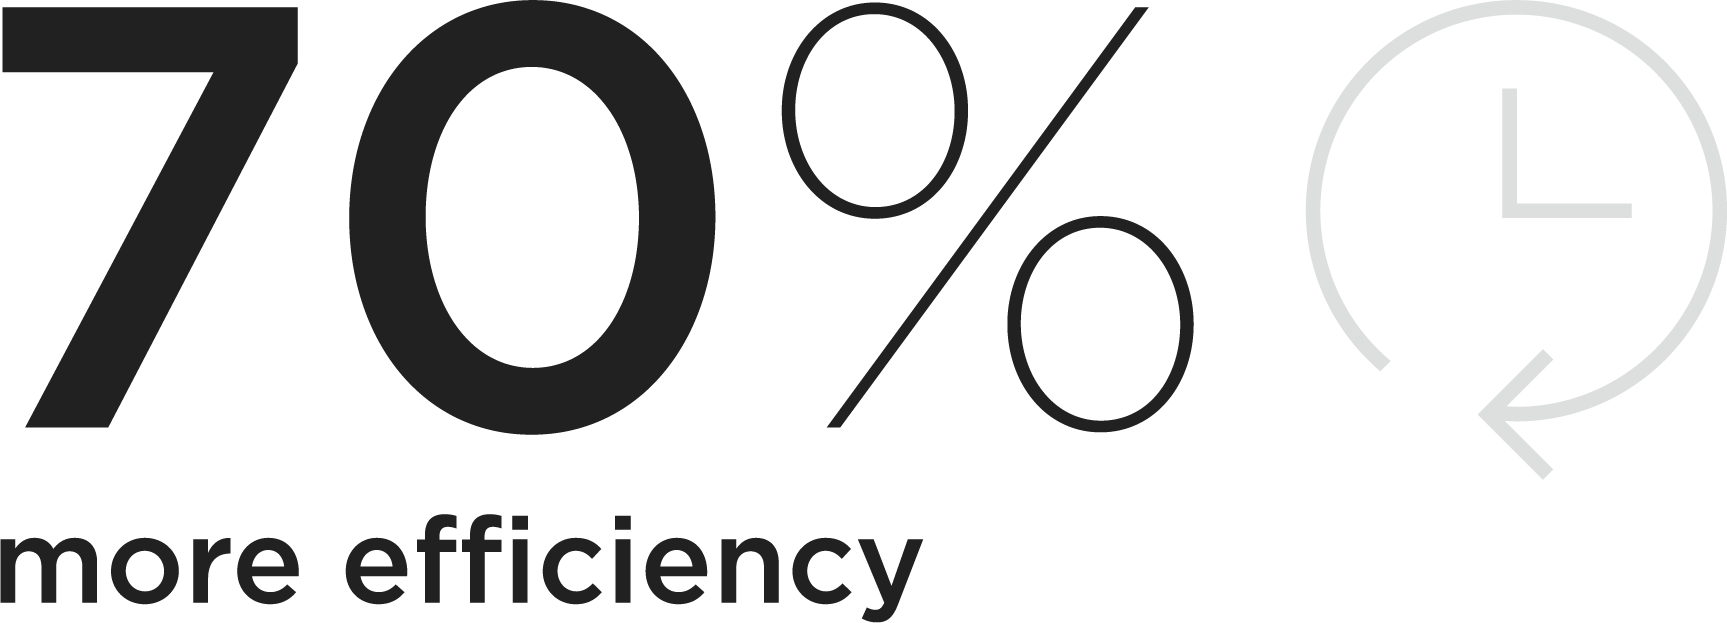 70% More Efficiency